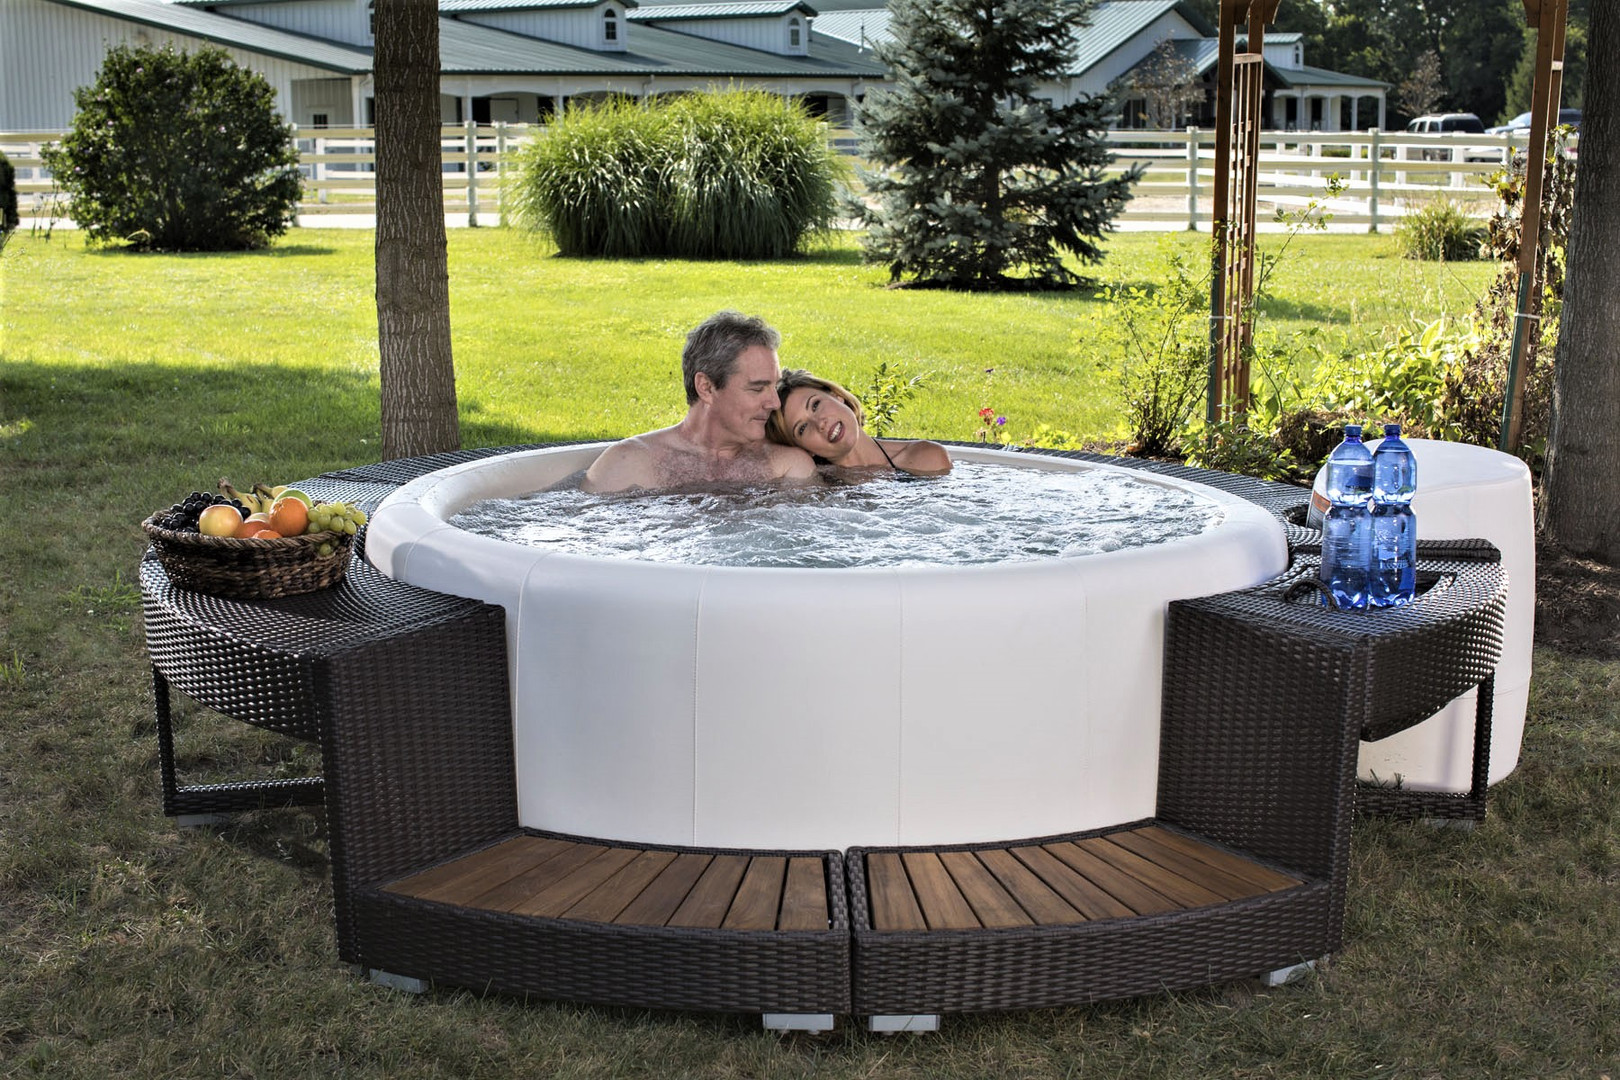 Softtub Hot Tubs